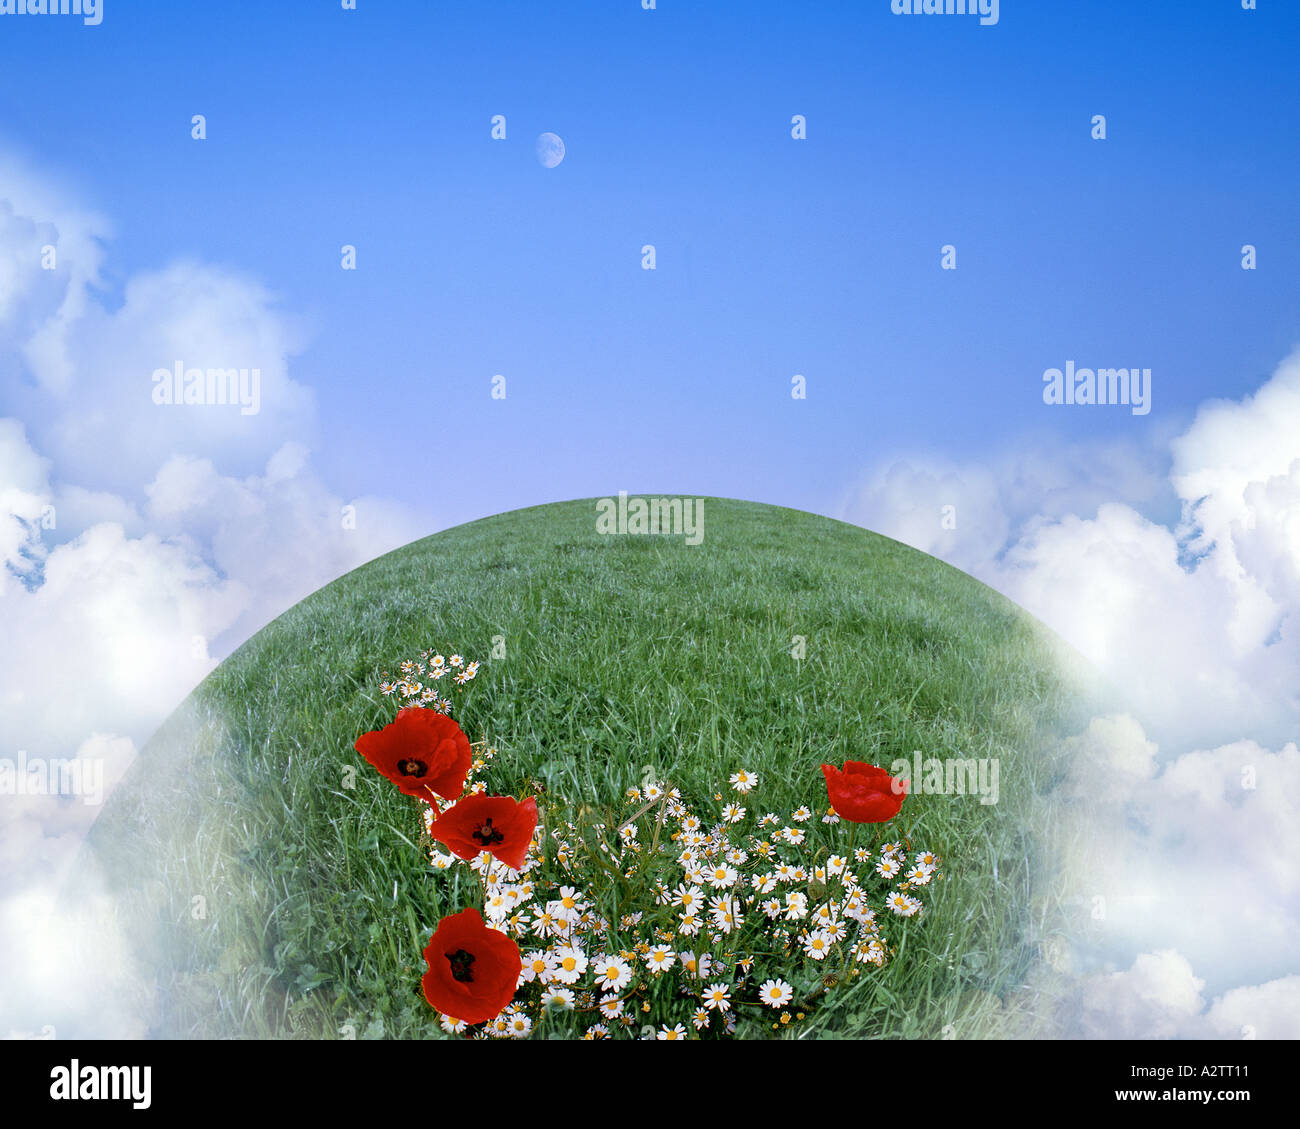 ENVIRONMENTAL CONCEPT: Global Warming - Stock Image